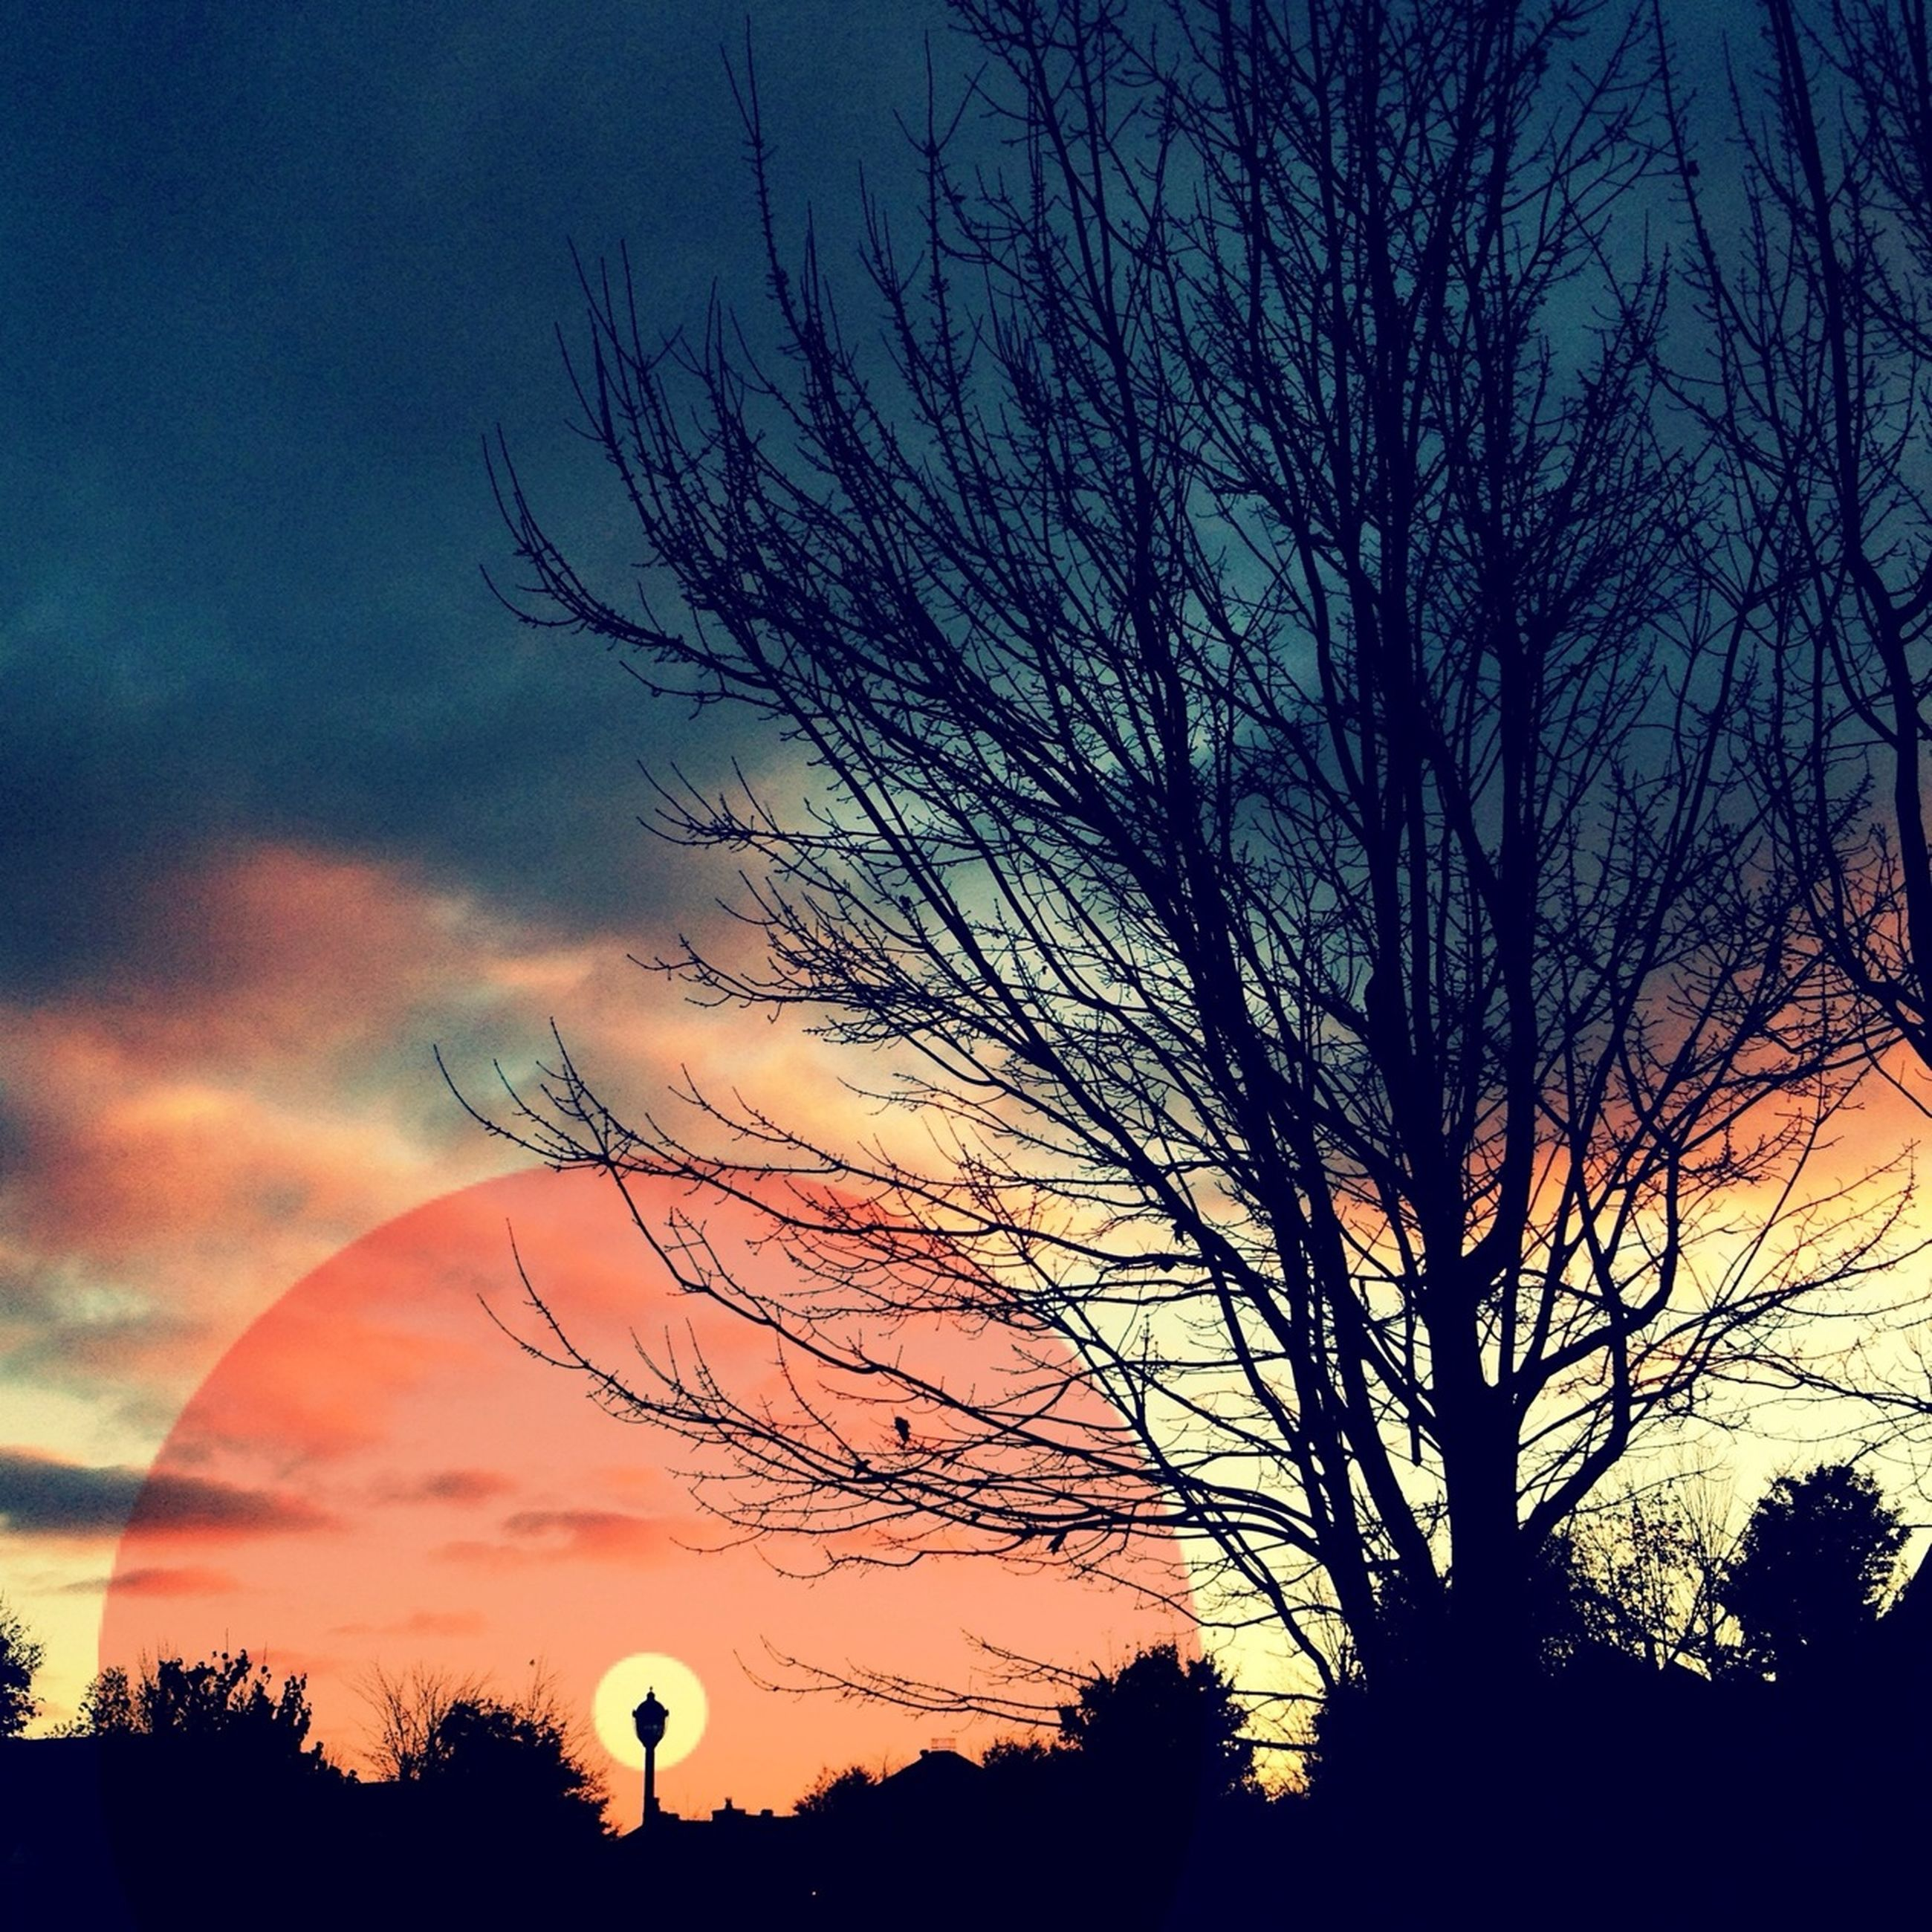 silhouette, sunset, bare tree, sky, tree, beauty in nature, tranquility, scenics, tranquil scene, cloud - sky, nature, low angle view, branch, orange color, dramatic sky, cloud, dusk, idyllic, outdoors, majestic